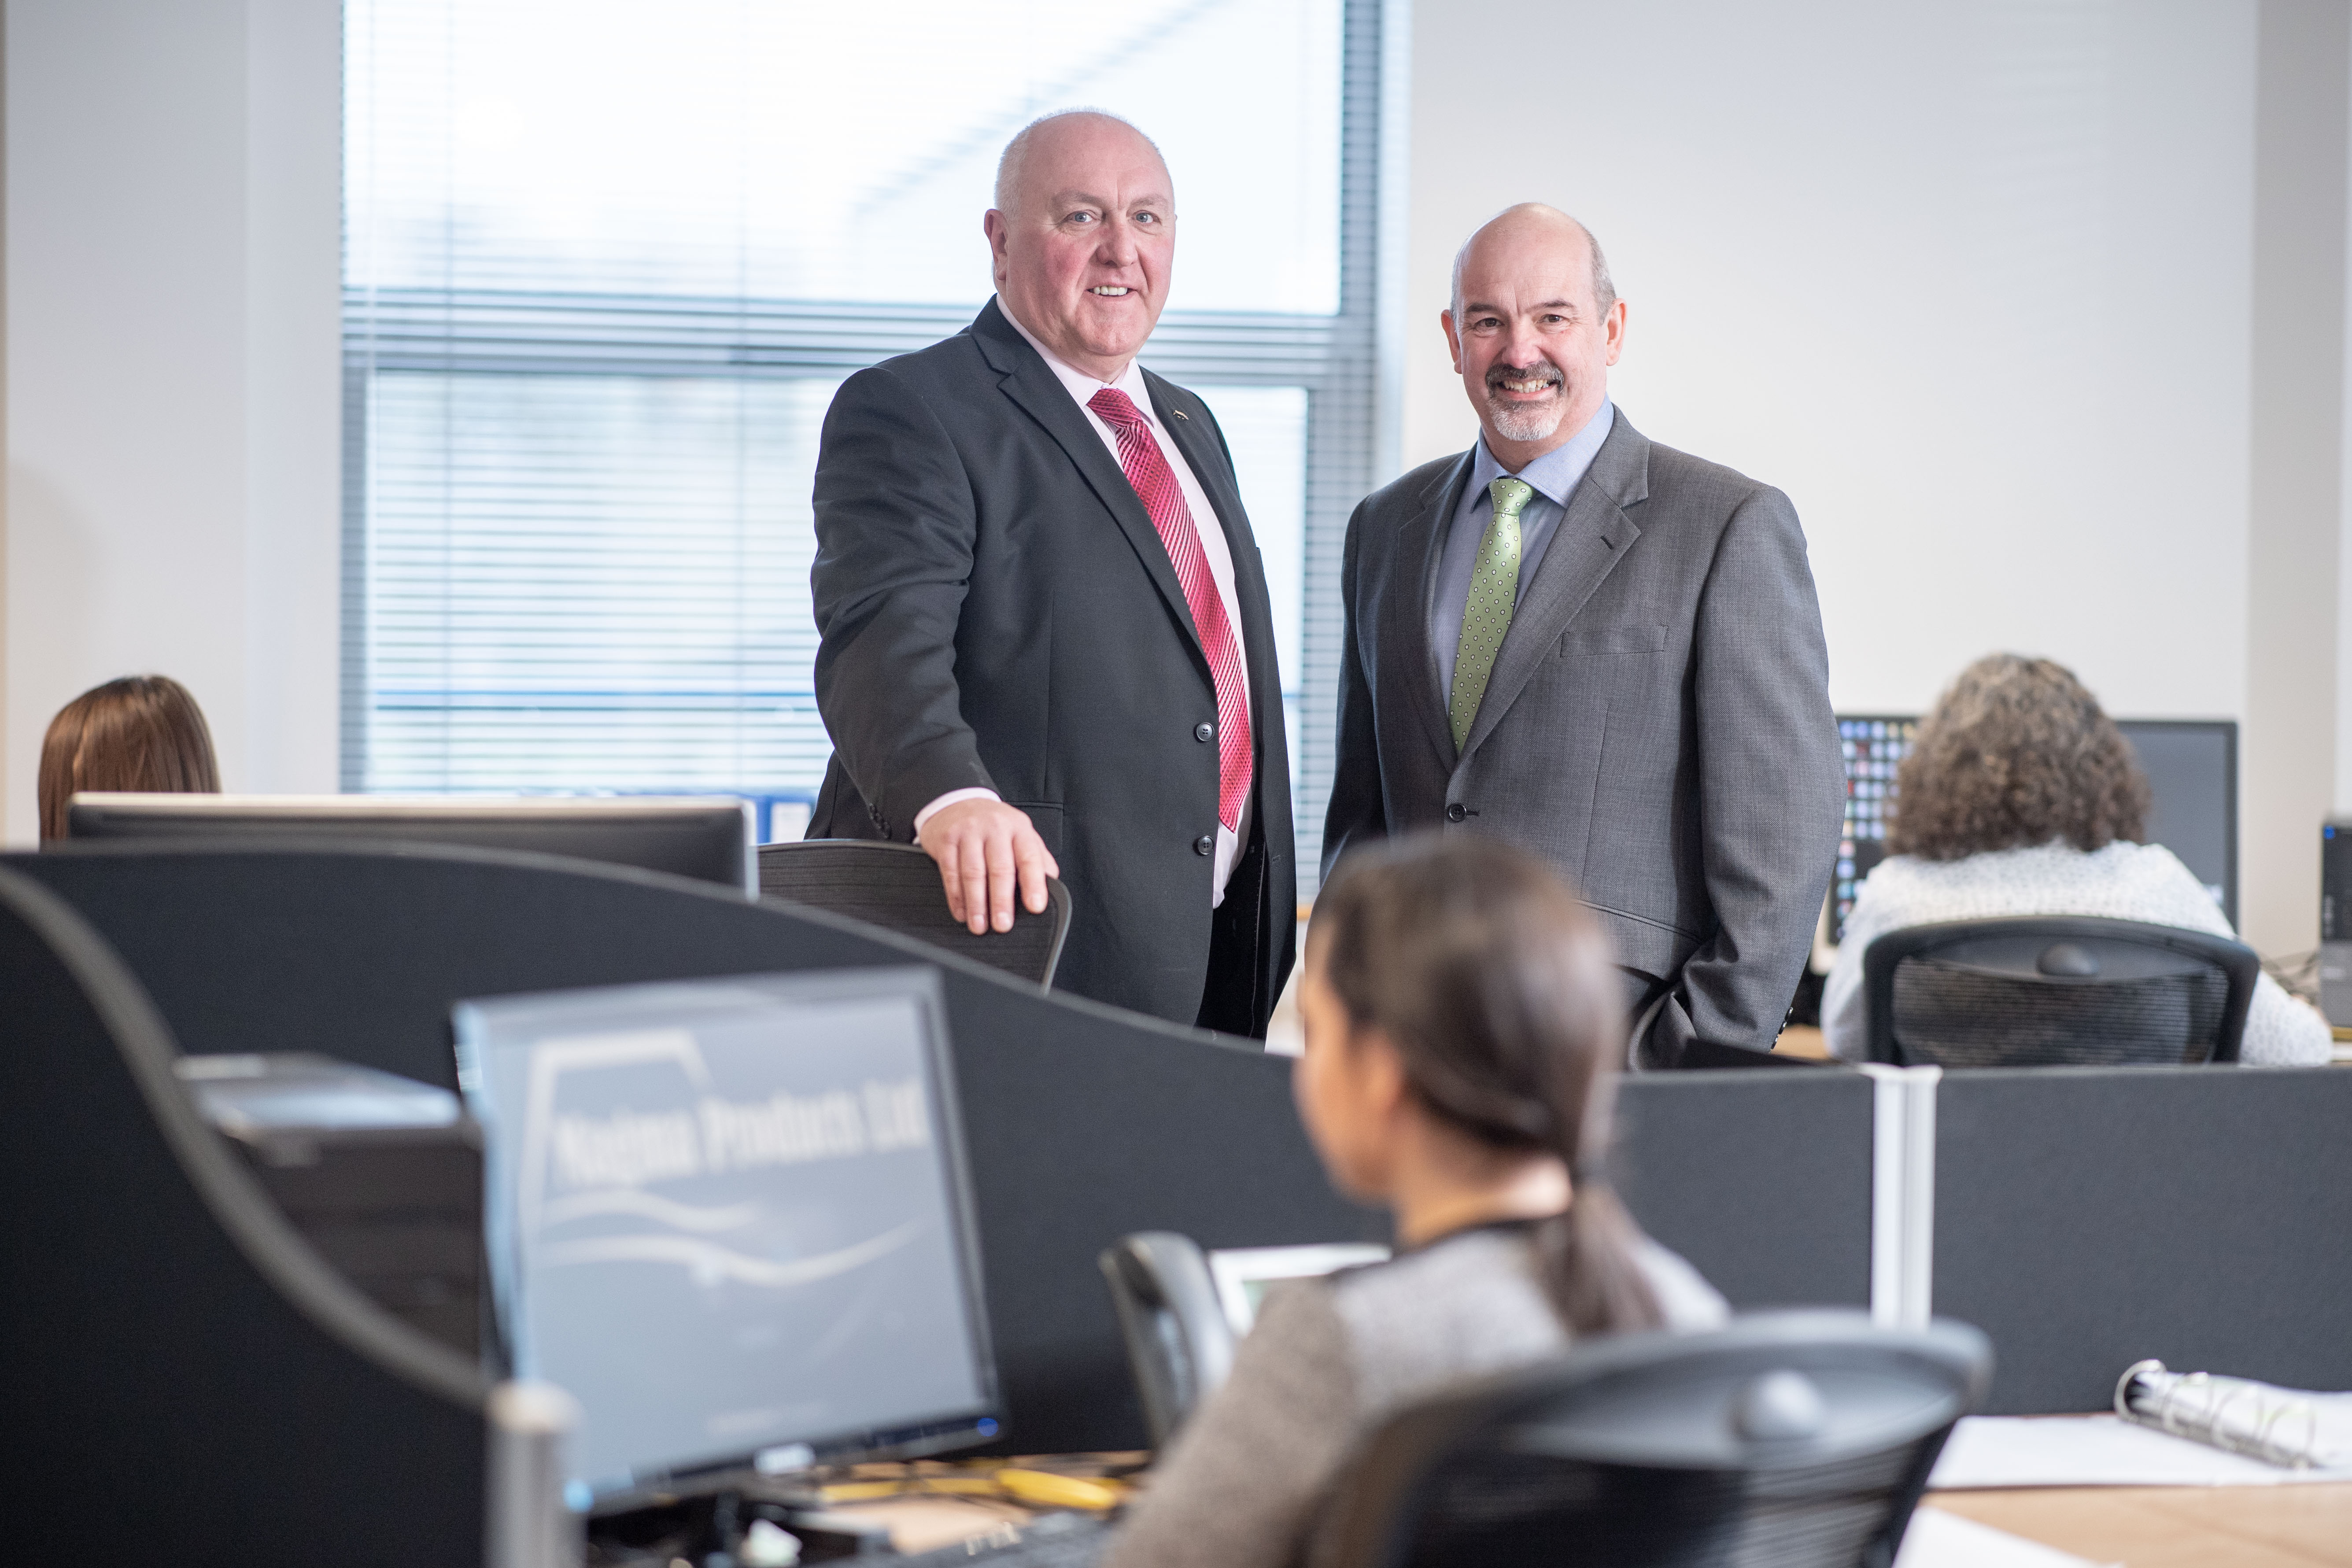 Magma Products managing director Phil Tweedy, left, and Paul Rushton, chairman of Magma Products, which has its HQ in Aberdeen.